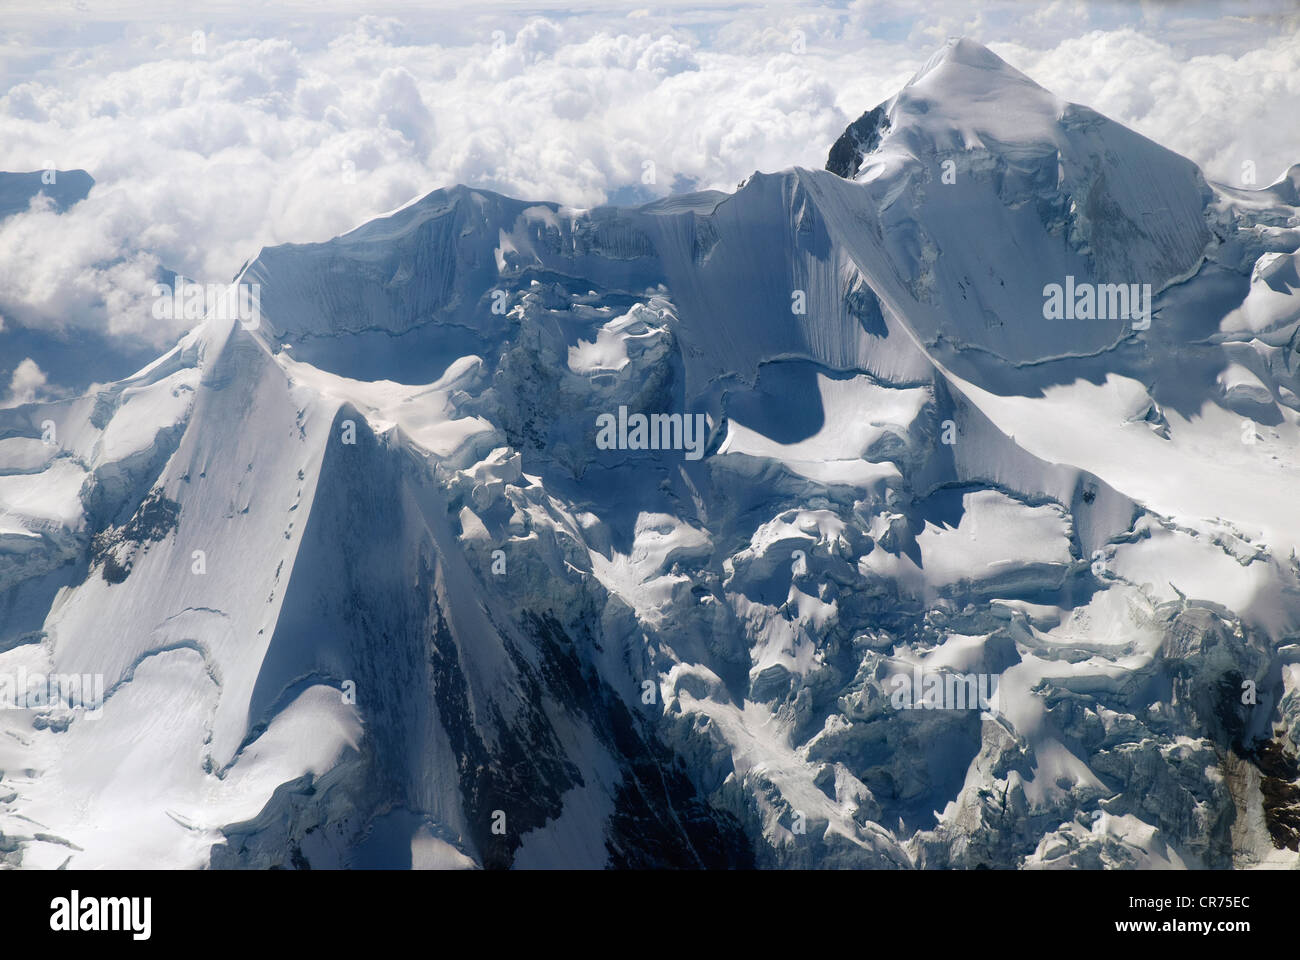 Aerial view of Huayna Potosi (6088 meters above sea level), Real Cordillera, Bolivia - Stock Image